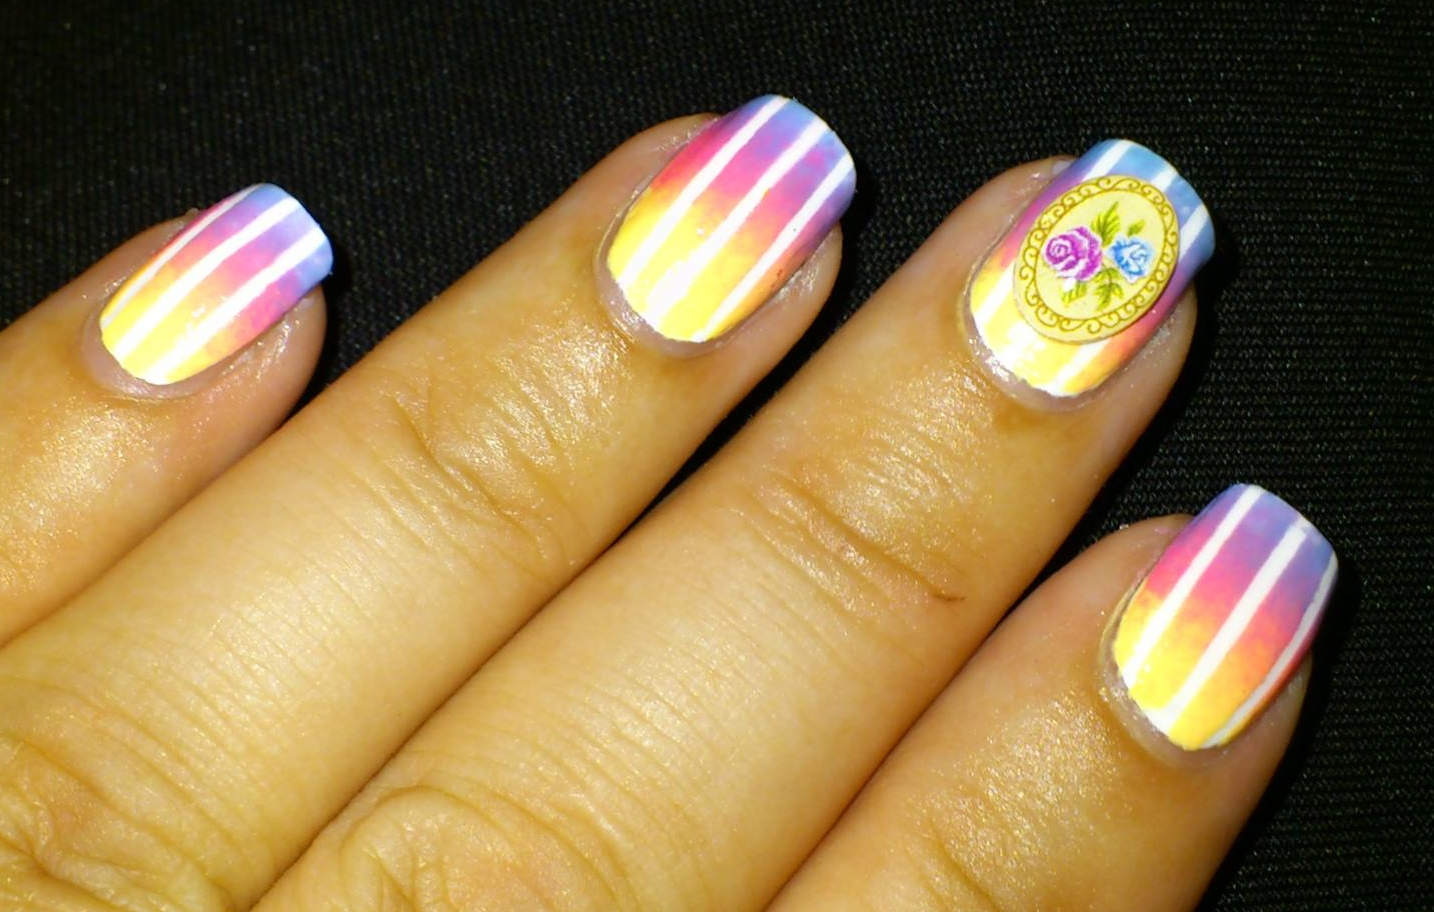 Nail designs tumblr for short nails 2014 for summer for toes creative nail design nail designs tumblr for short nails 2014 for summer for toes photos prinsesfo Image collections